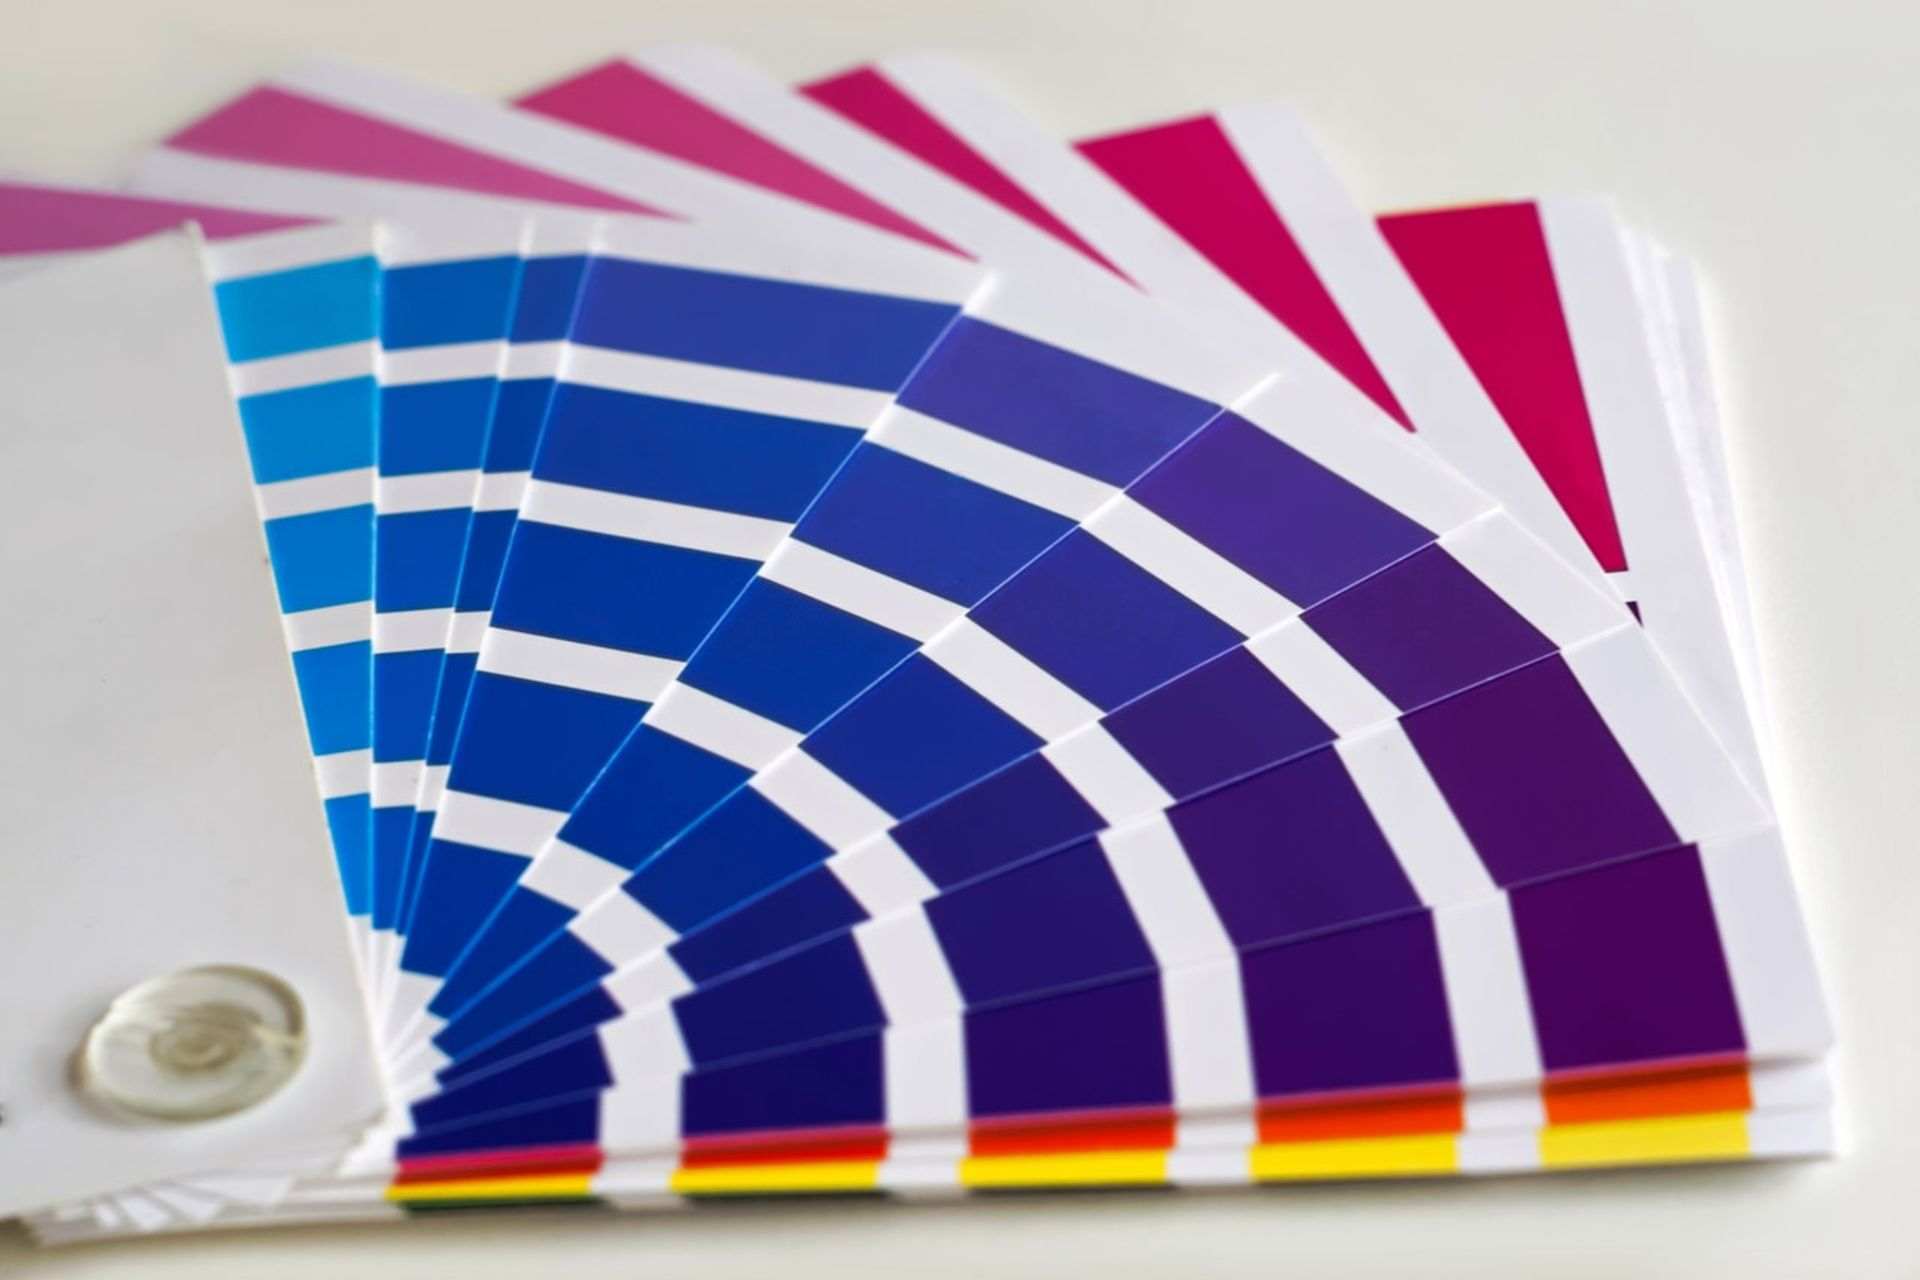 Choosing The Right Color For Your Home